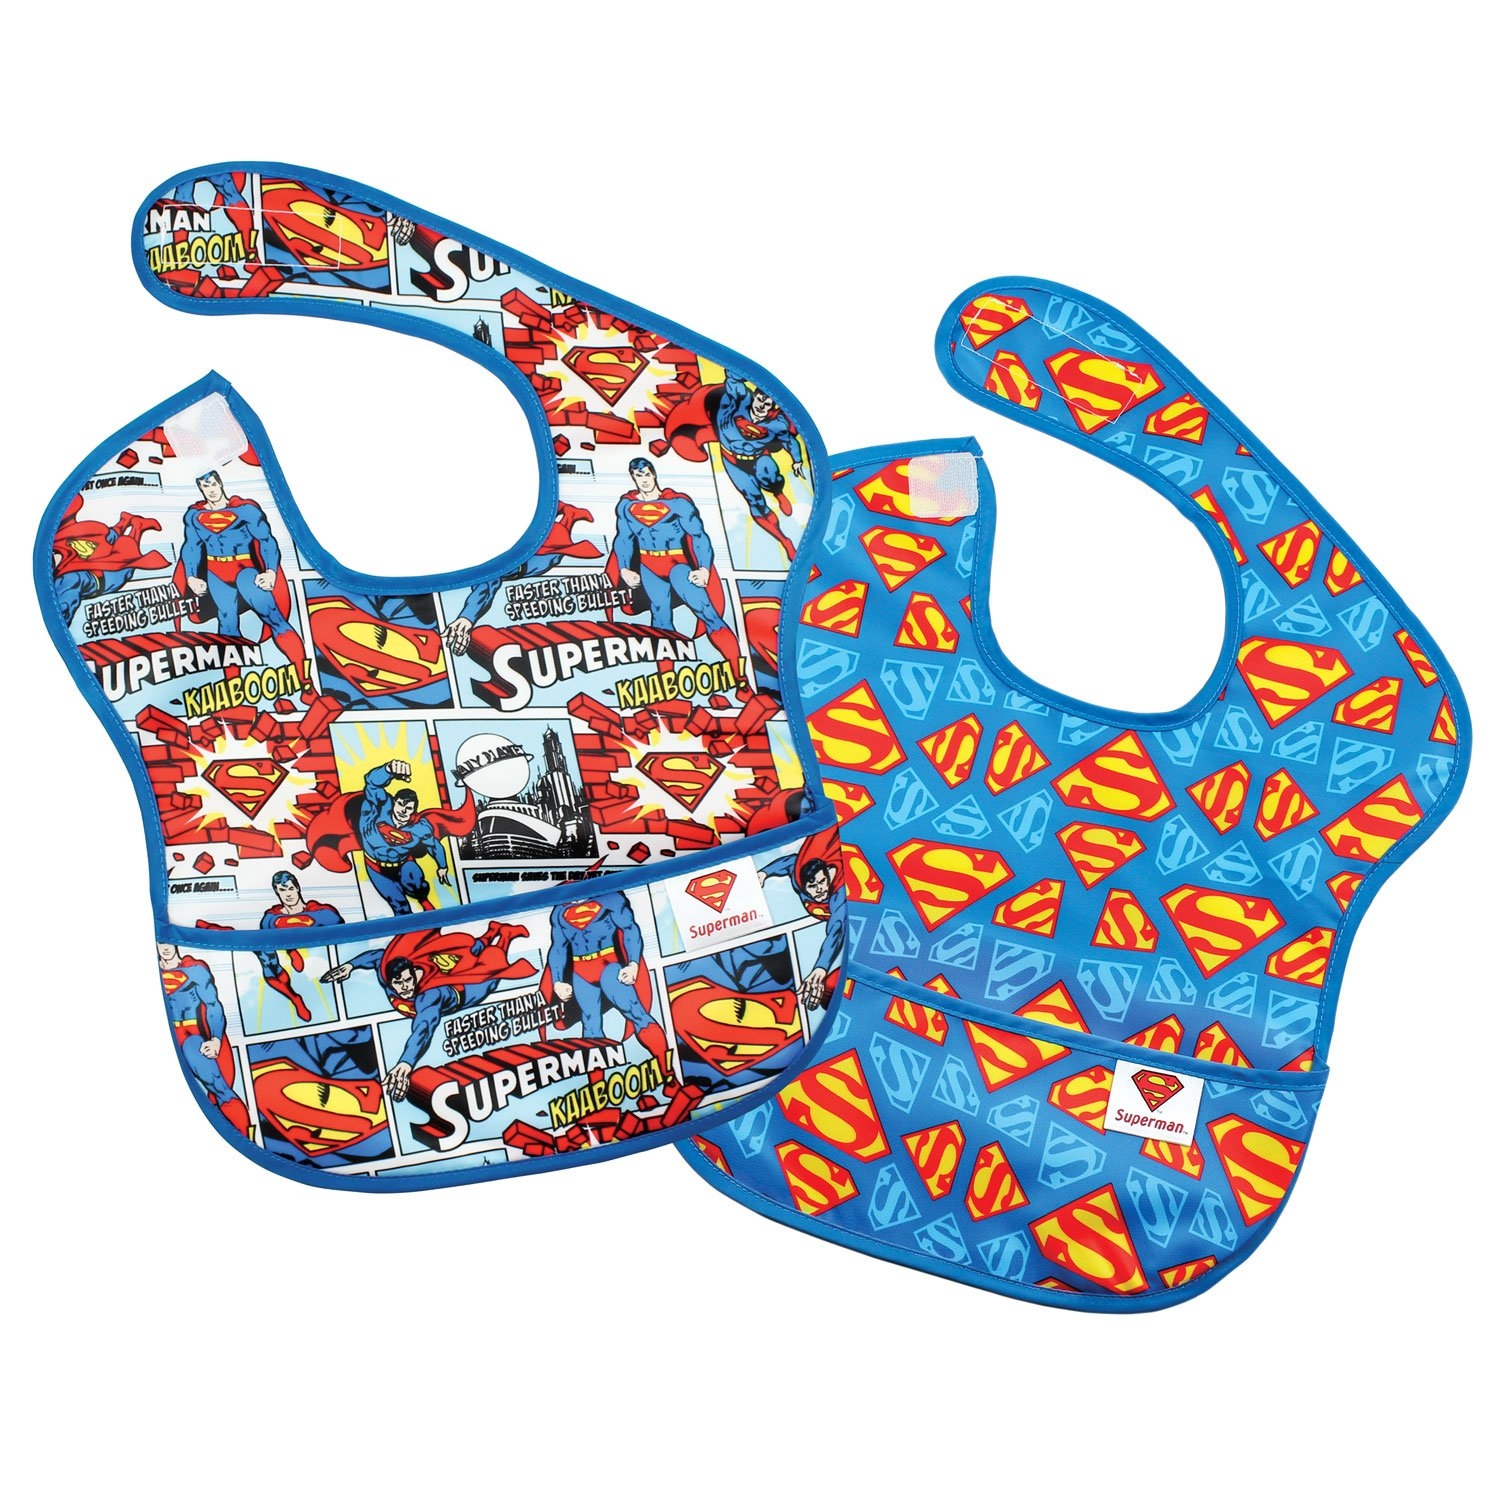 Bumkins Baby Bib, Disney Waterproof SuperBib 2 Pack, Mickey Mouse (Classic/Icon) (6-24 Months) S2-DMK1